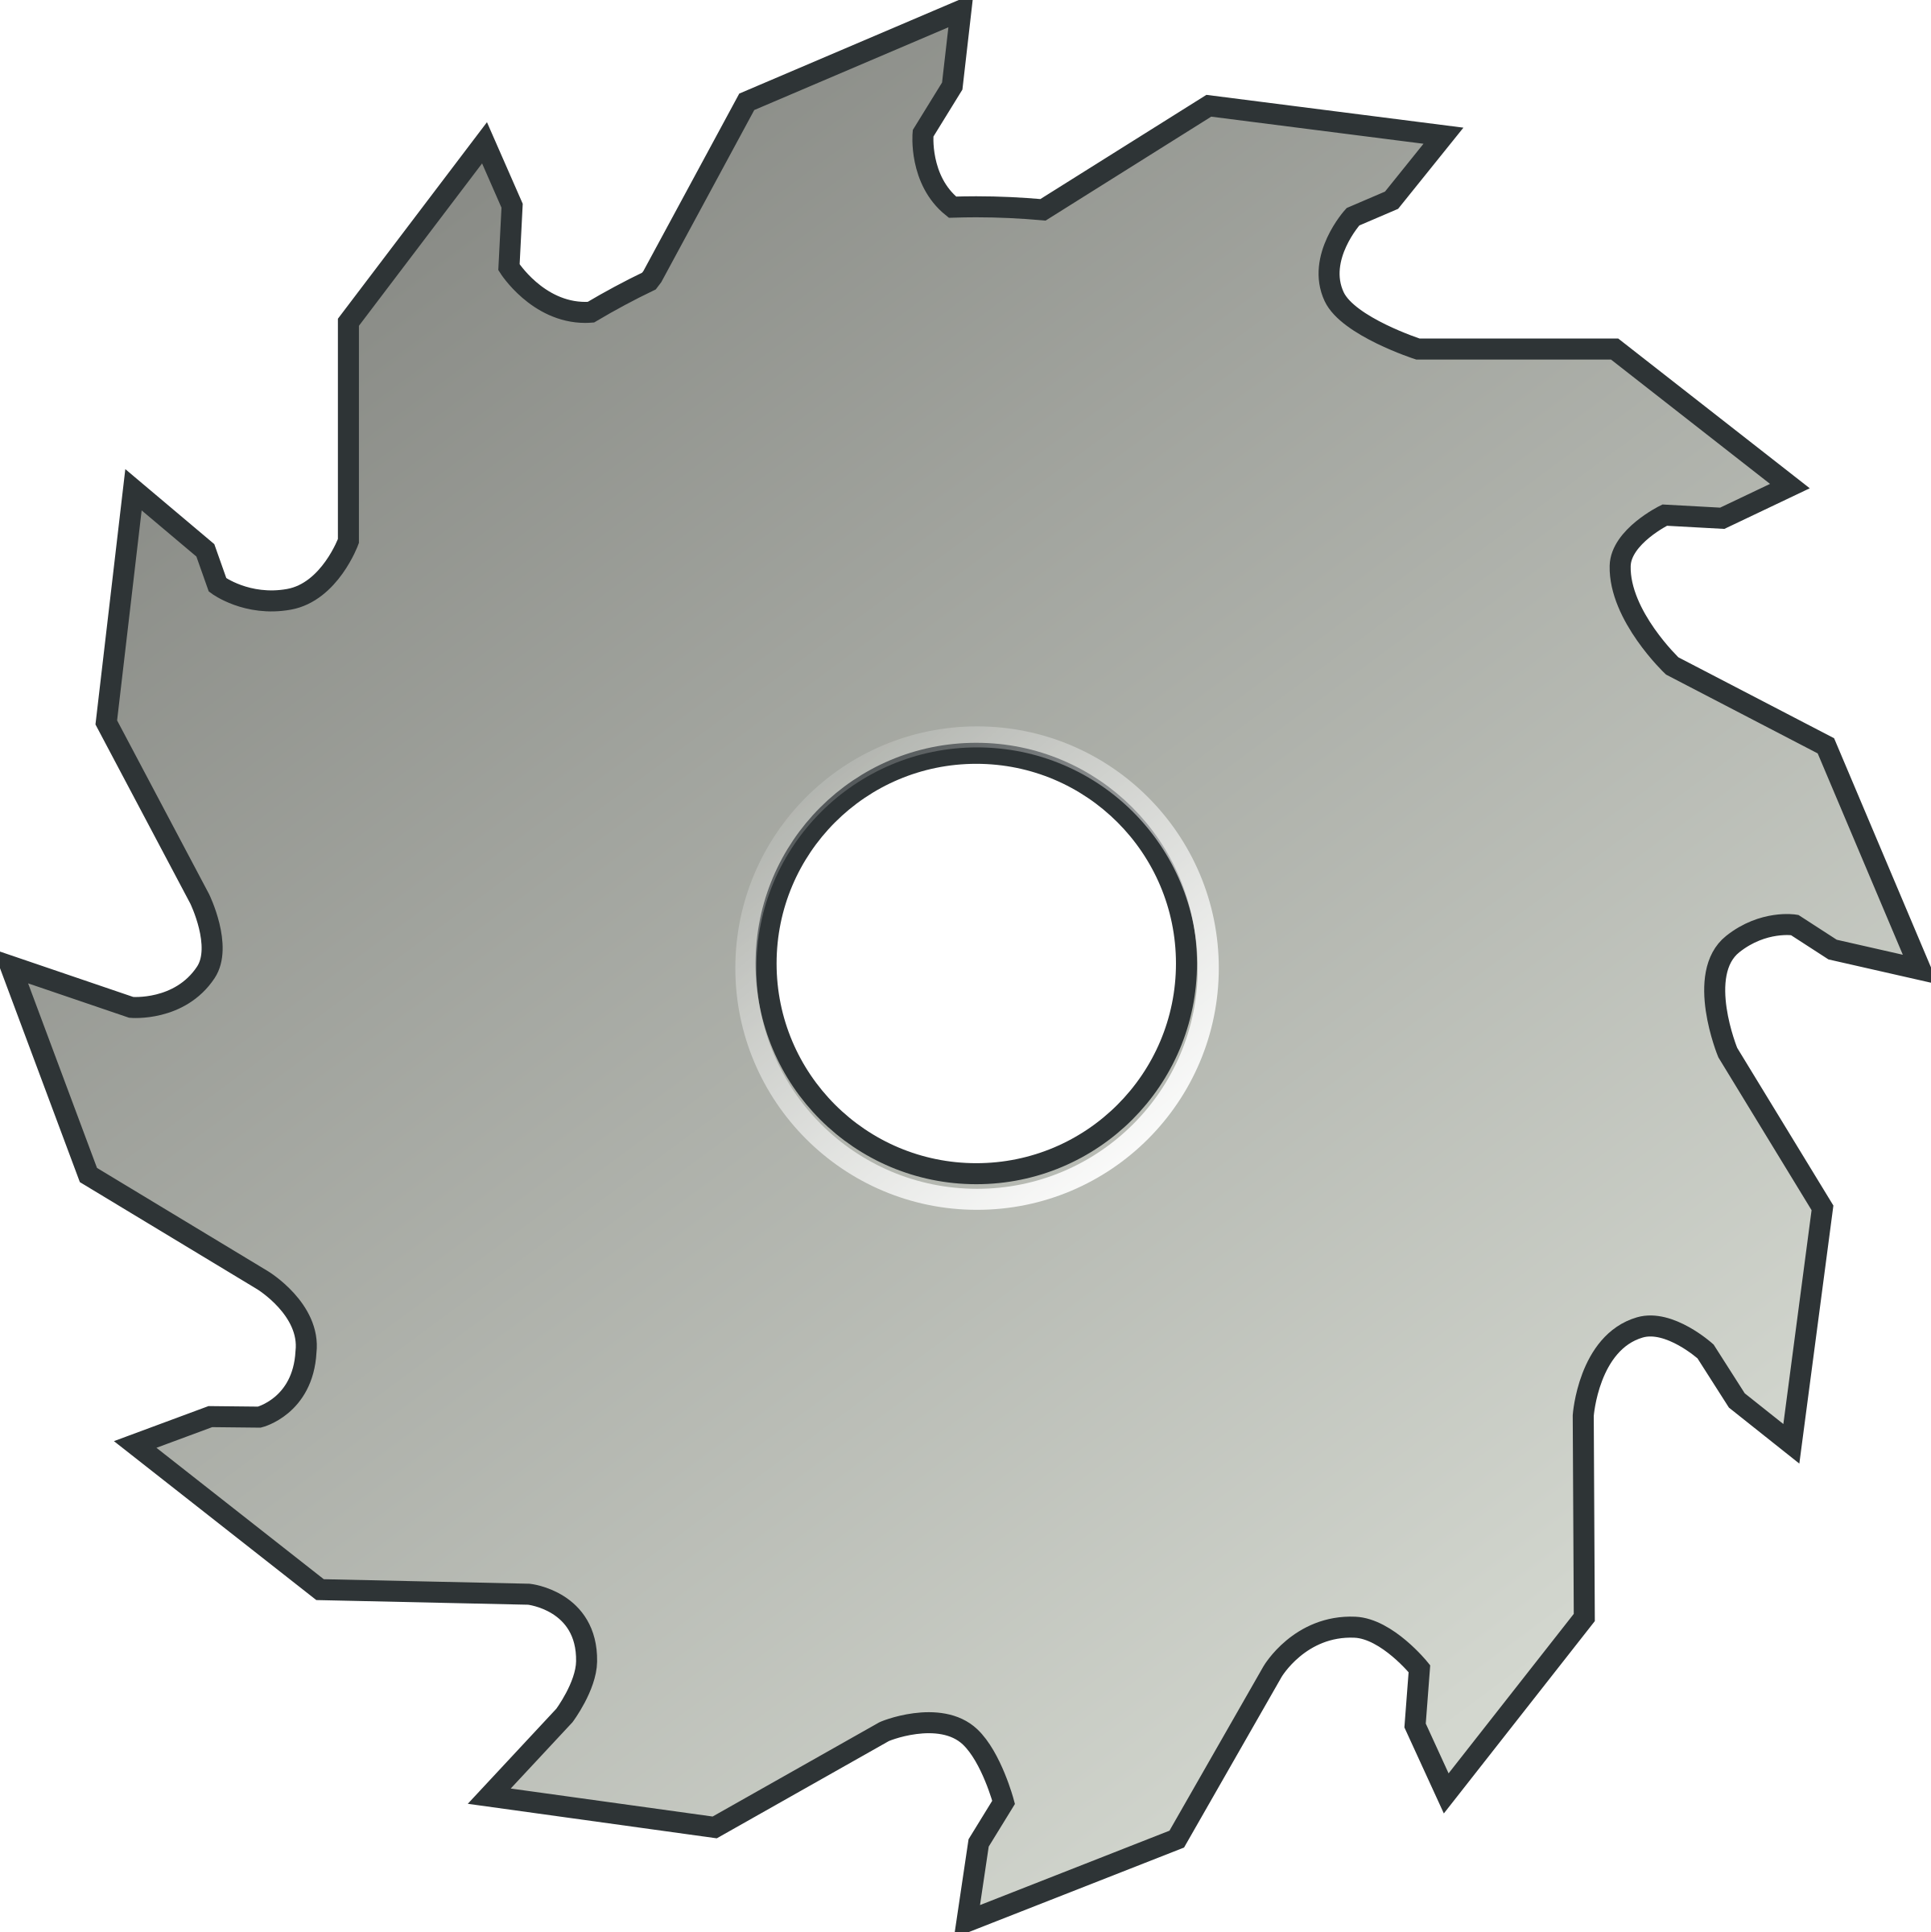 Blade clipart black and white Saw Blade Clipart Blade Saw